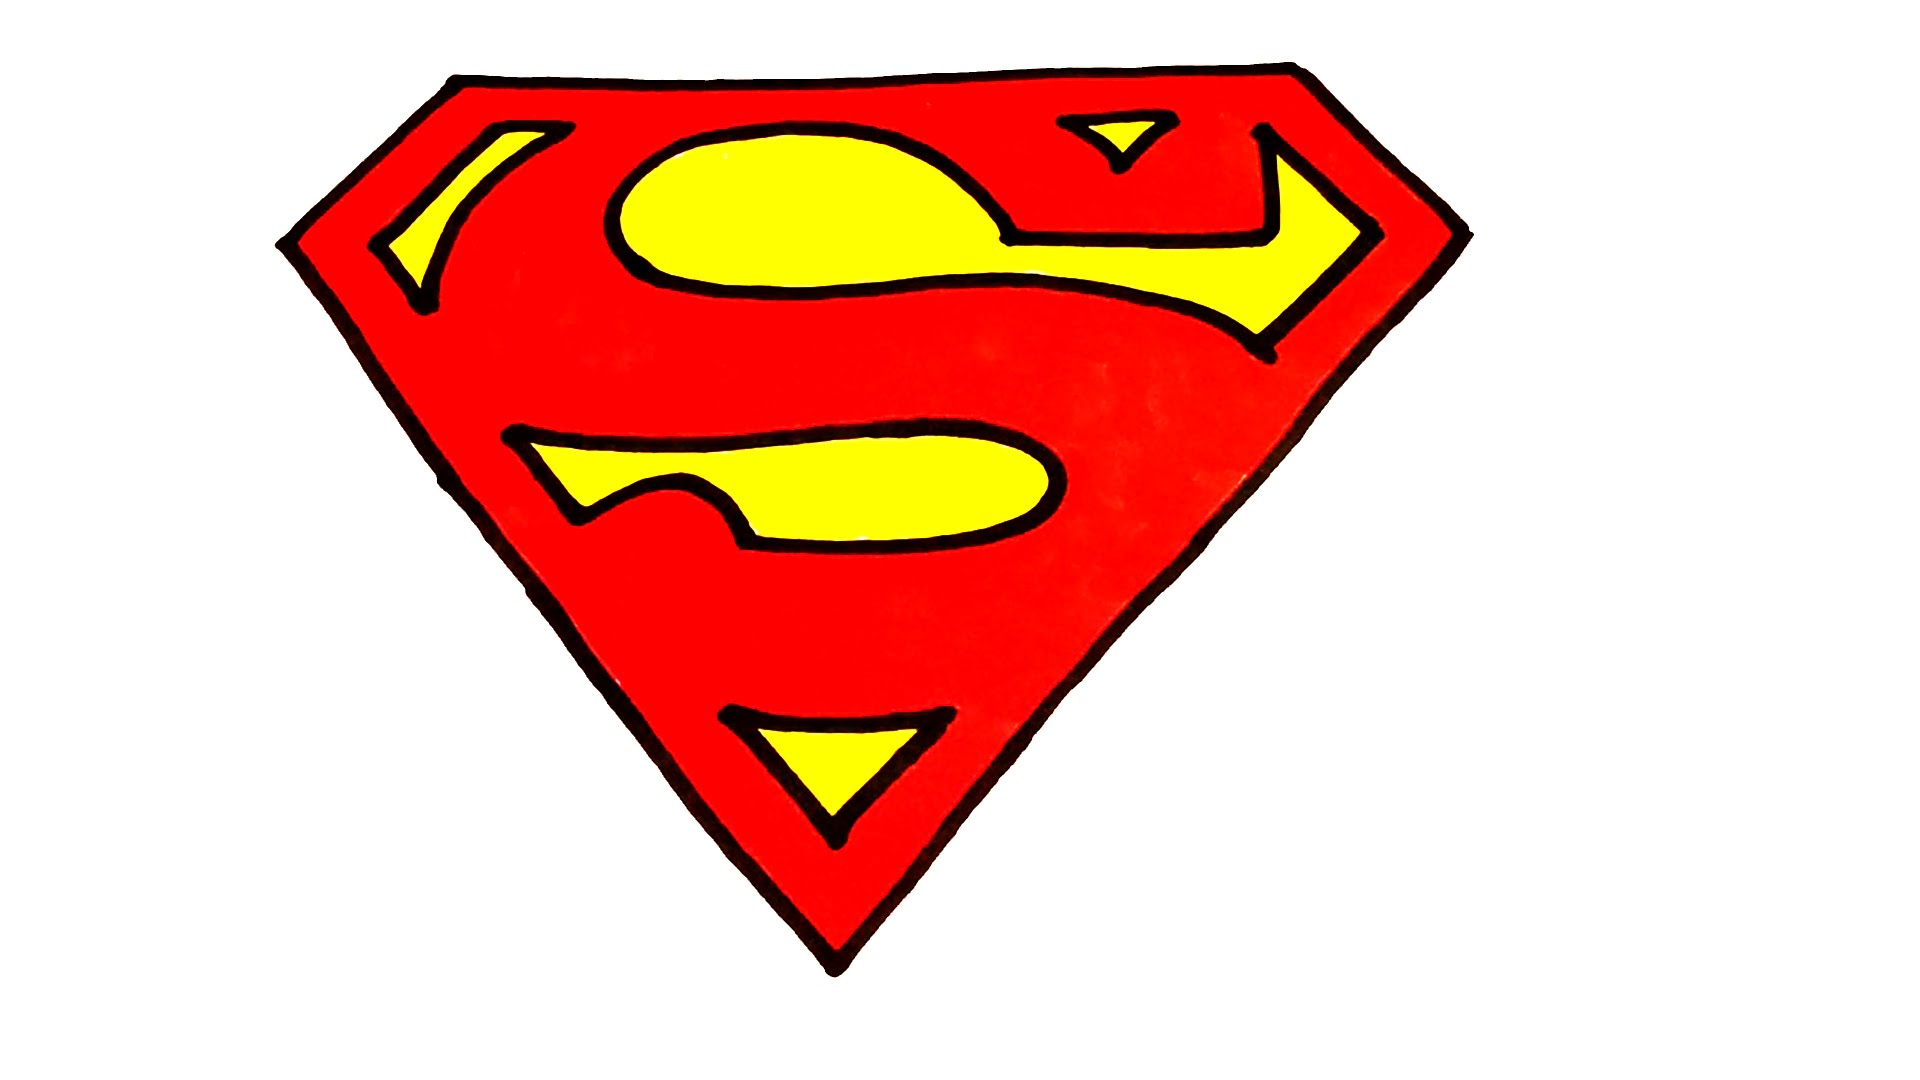 1920x1080 How To Draw Superman Logo Easy For Kids